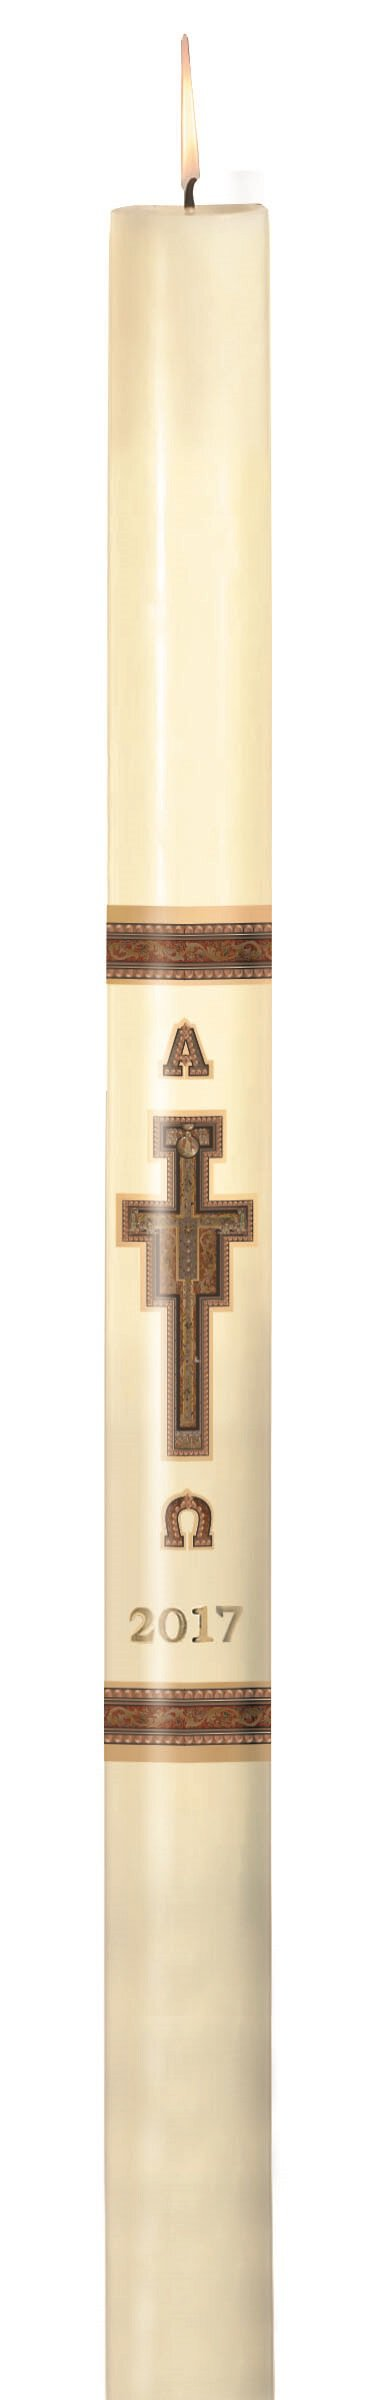 No 11 San Damiano Paschal Candle